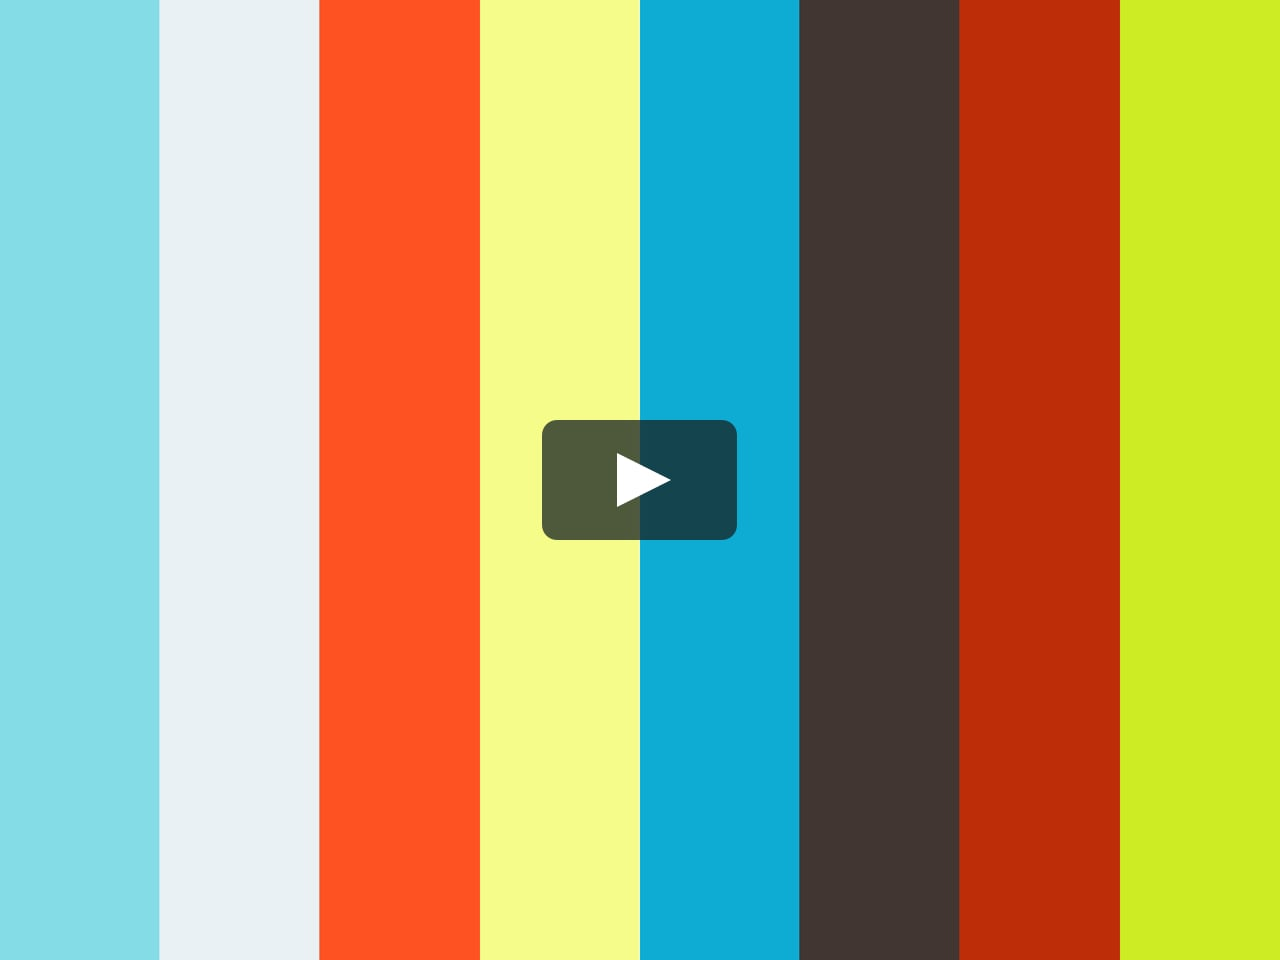 How to make your own stickers more effective on vimeo